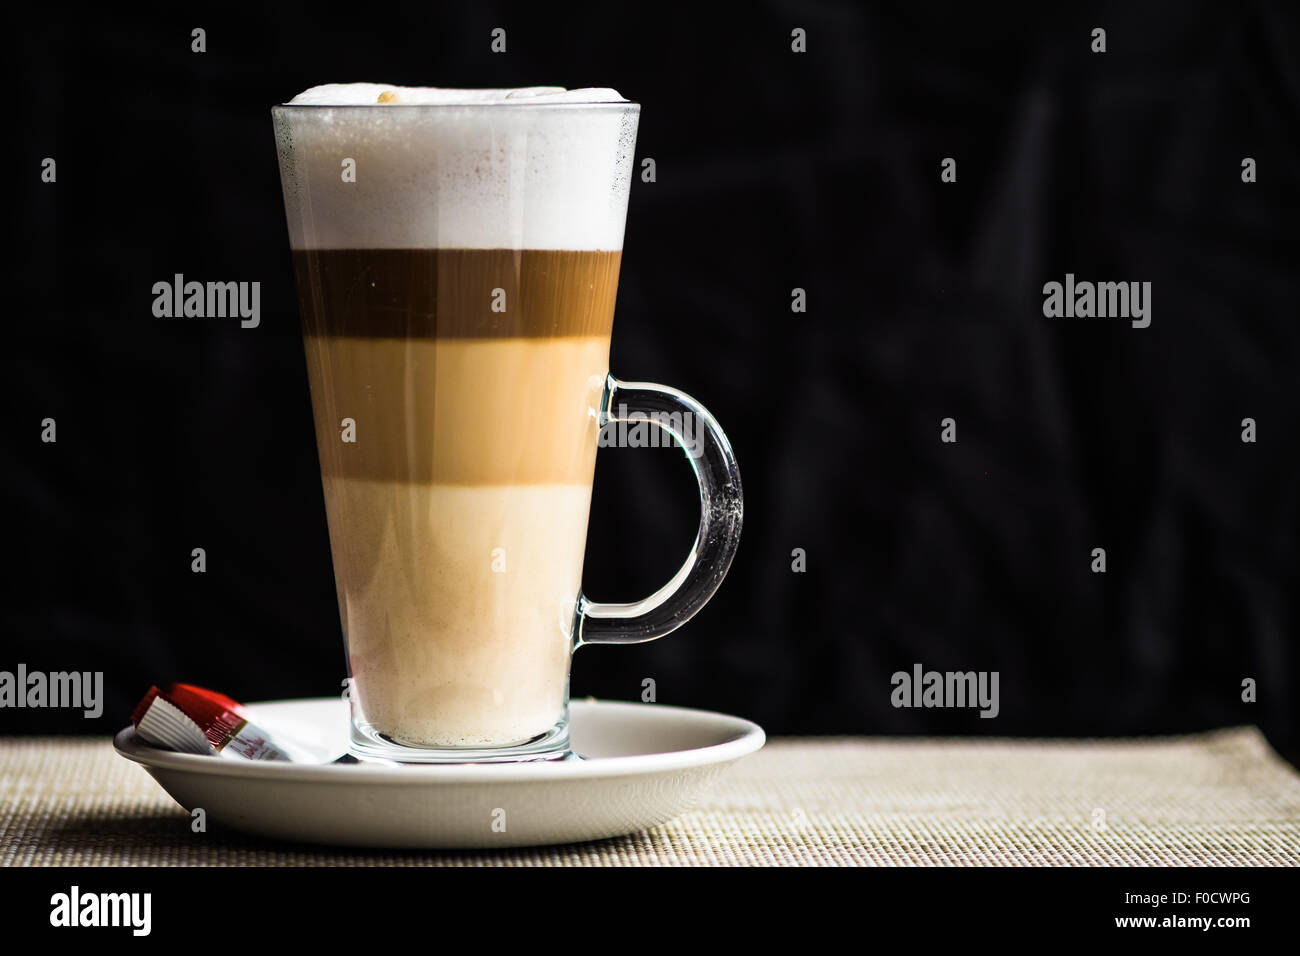 Layered Latte Coffee In A Glass Mug Stock Photo Alamy